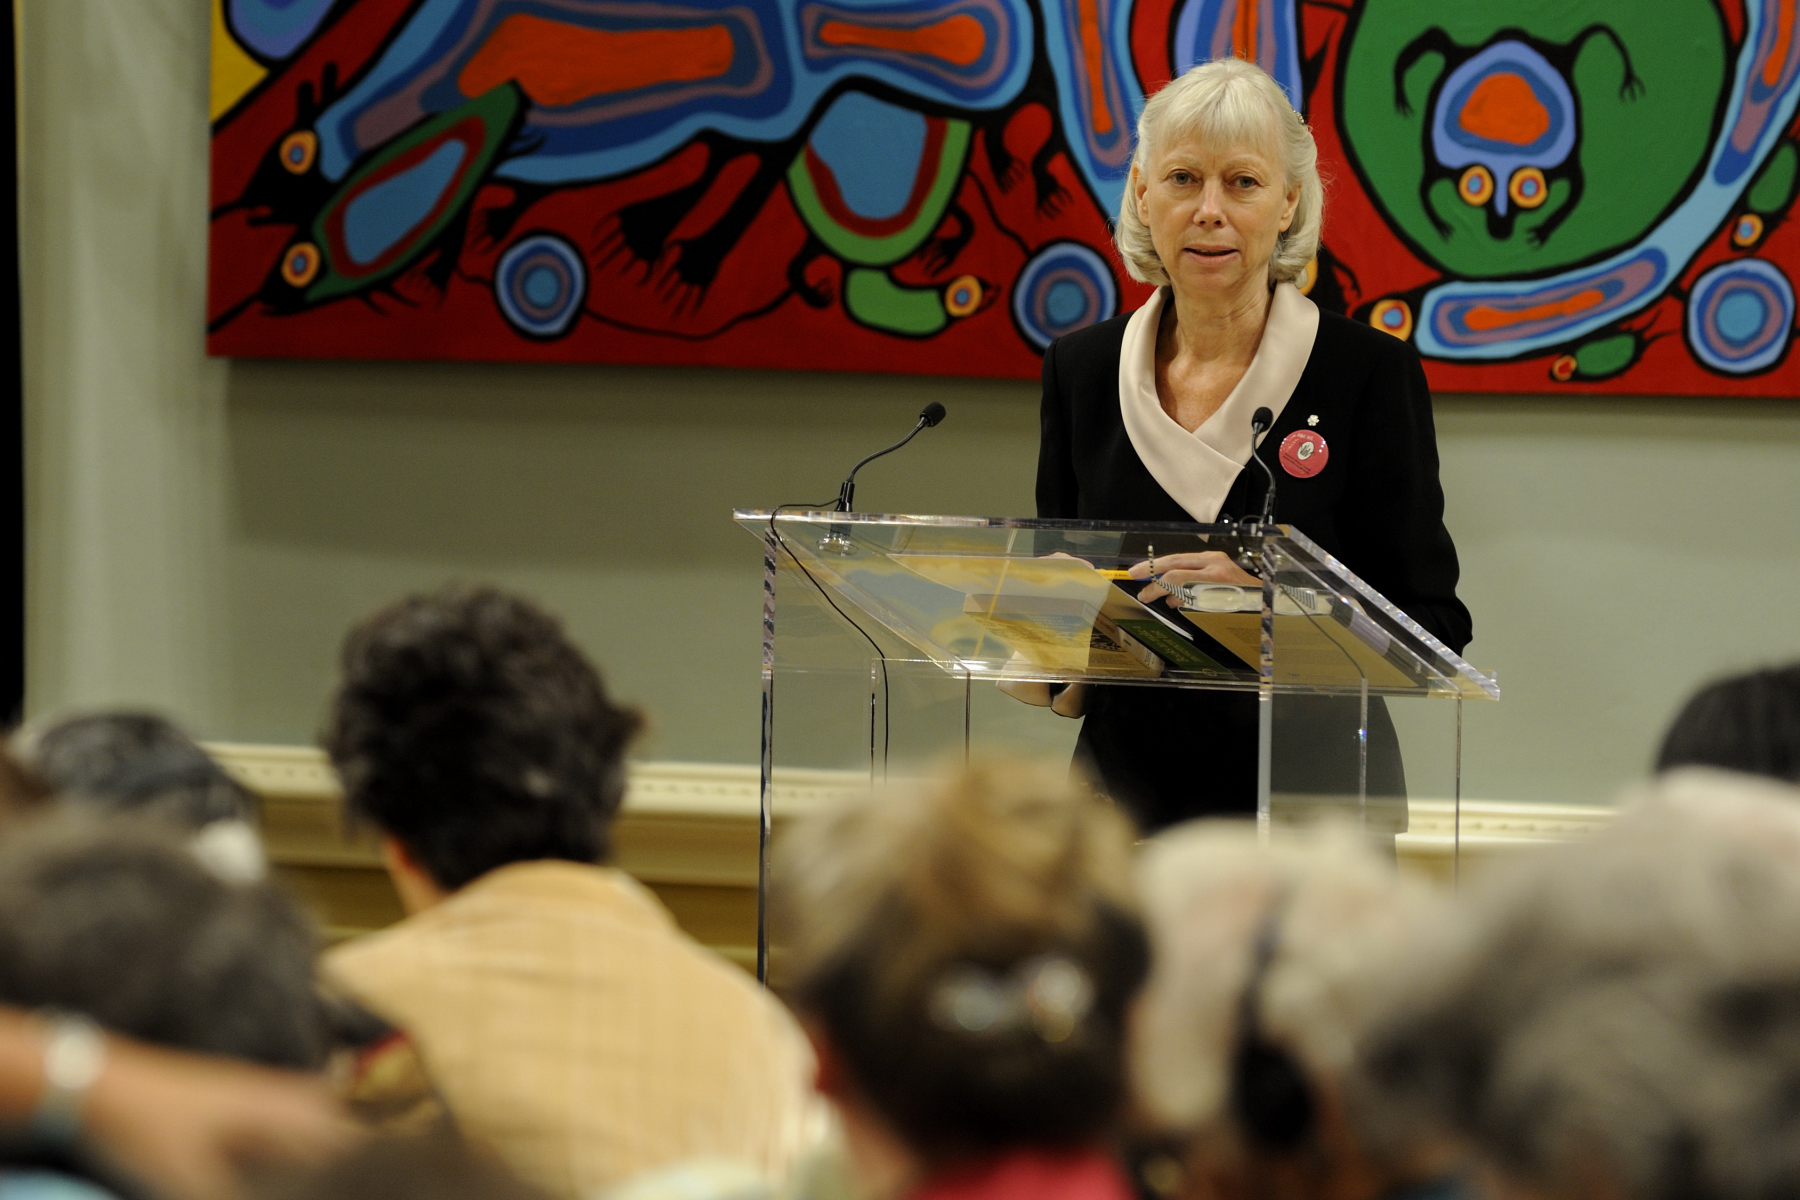 During the first morning of the conference, Constance Backhouse, professor of law at the University of Ottawa analyzed the evolution of Canadian women's rights since the Canadian Bill of Rights in 1960 and talked about the intrinsic link between rights and security. Her colleague Lucie Lamarche was also a speaker.